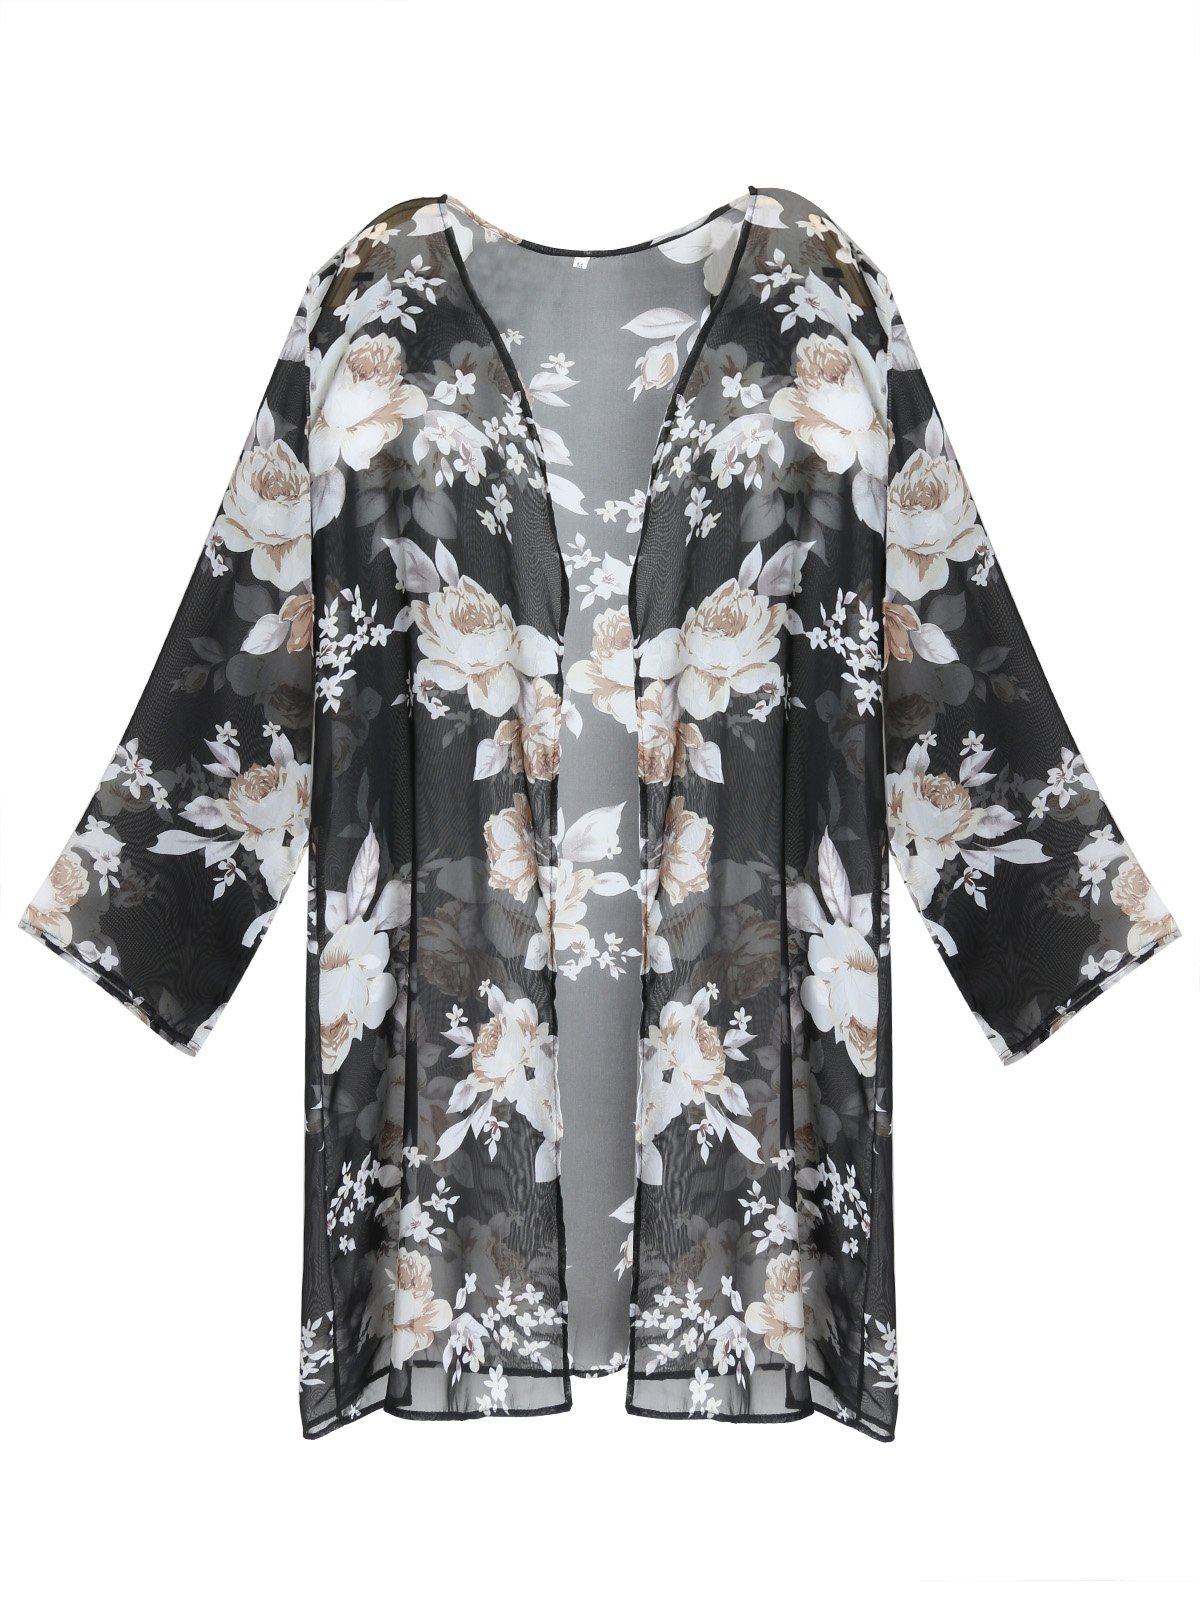 GESSY Beach Cover Up, Womens Long Sleeve White Peony Sheer Floral Print Chiffon Blouse Casual Loose Tops Chic Open Front Floral Print Cardigan Kimono Capes Cover Ups Black L